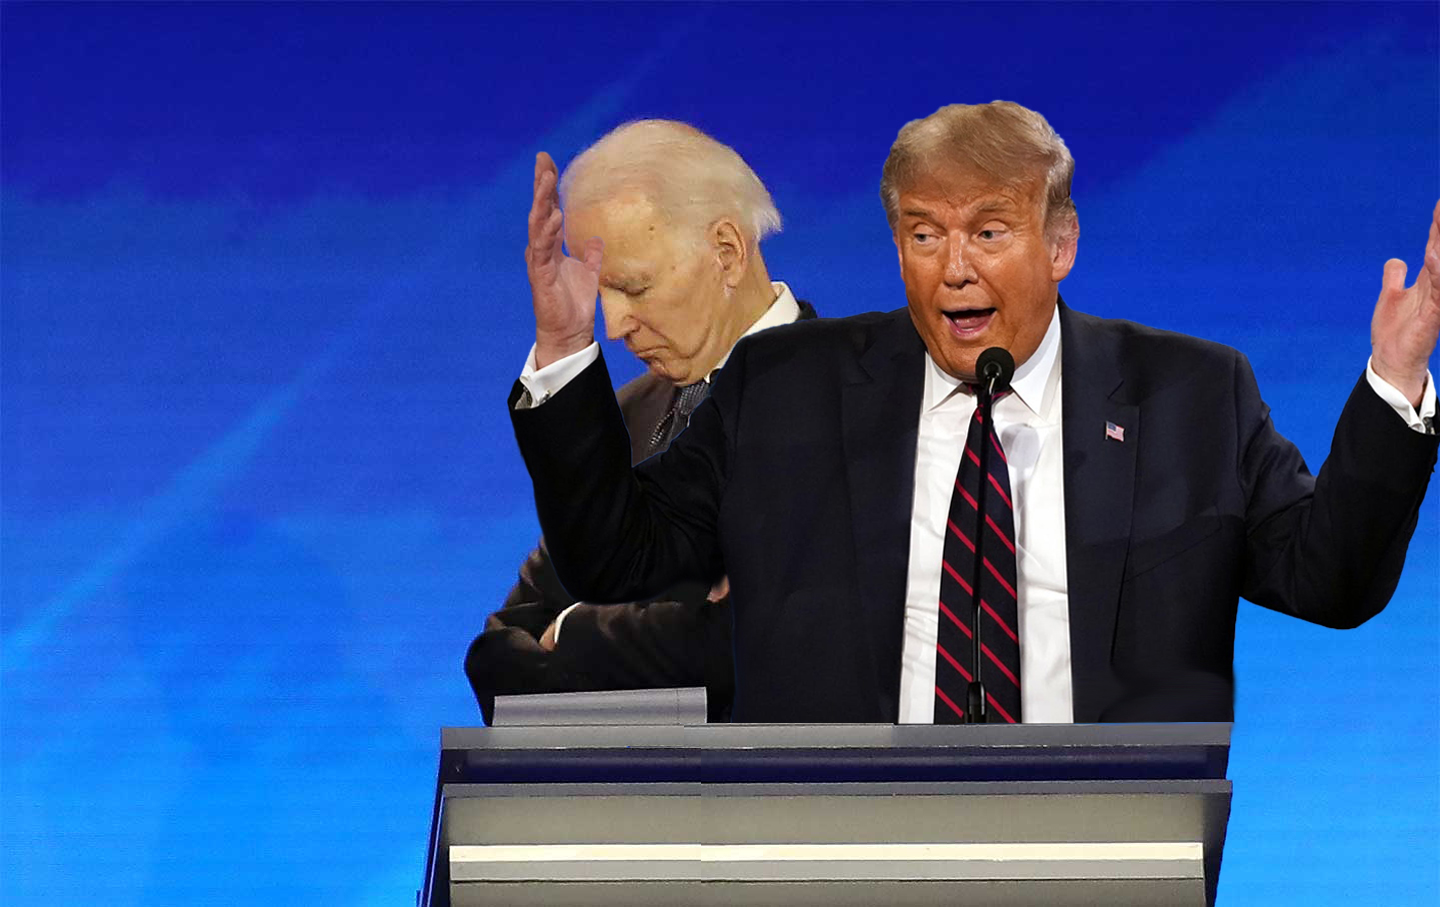 To Sidestep Having His Mic Cut, Trump Plans to Share Biden's Podium